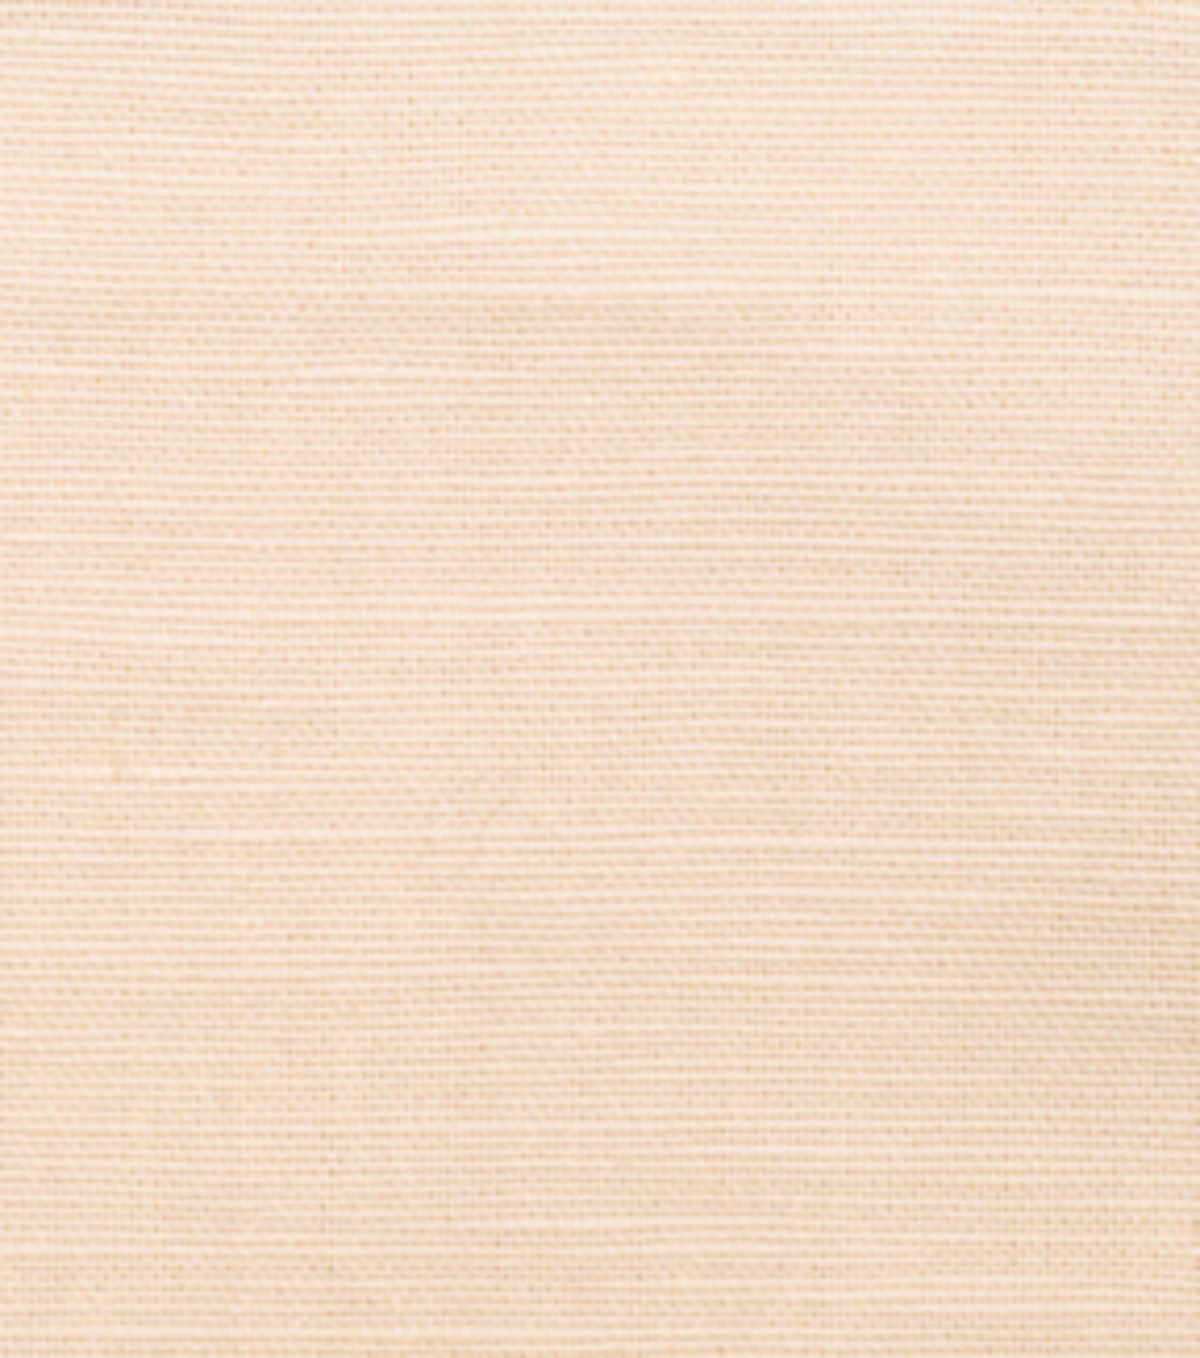 Home Decor 8\u0022x8\u0022 Fabric Swatch-Signature Series Sonoma Linen-Cotton Salt